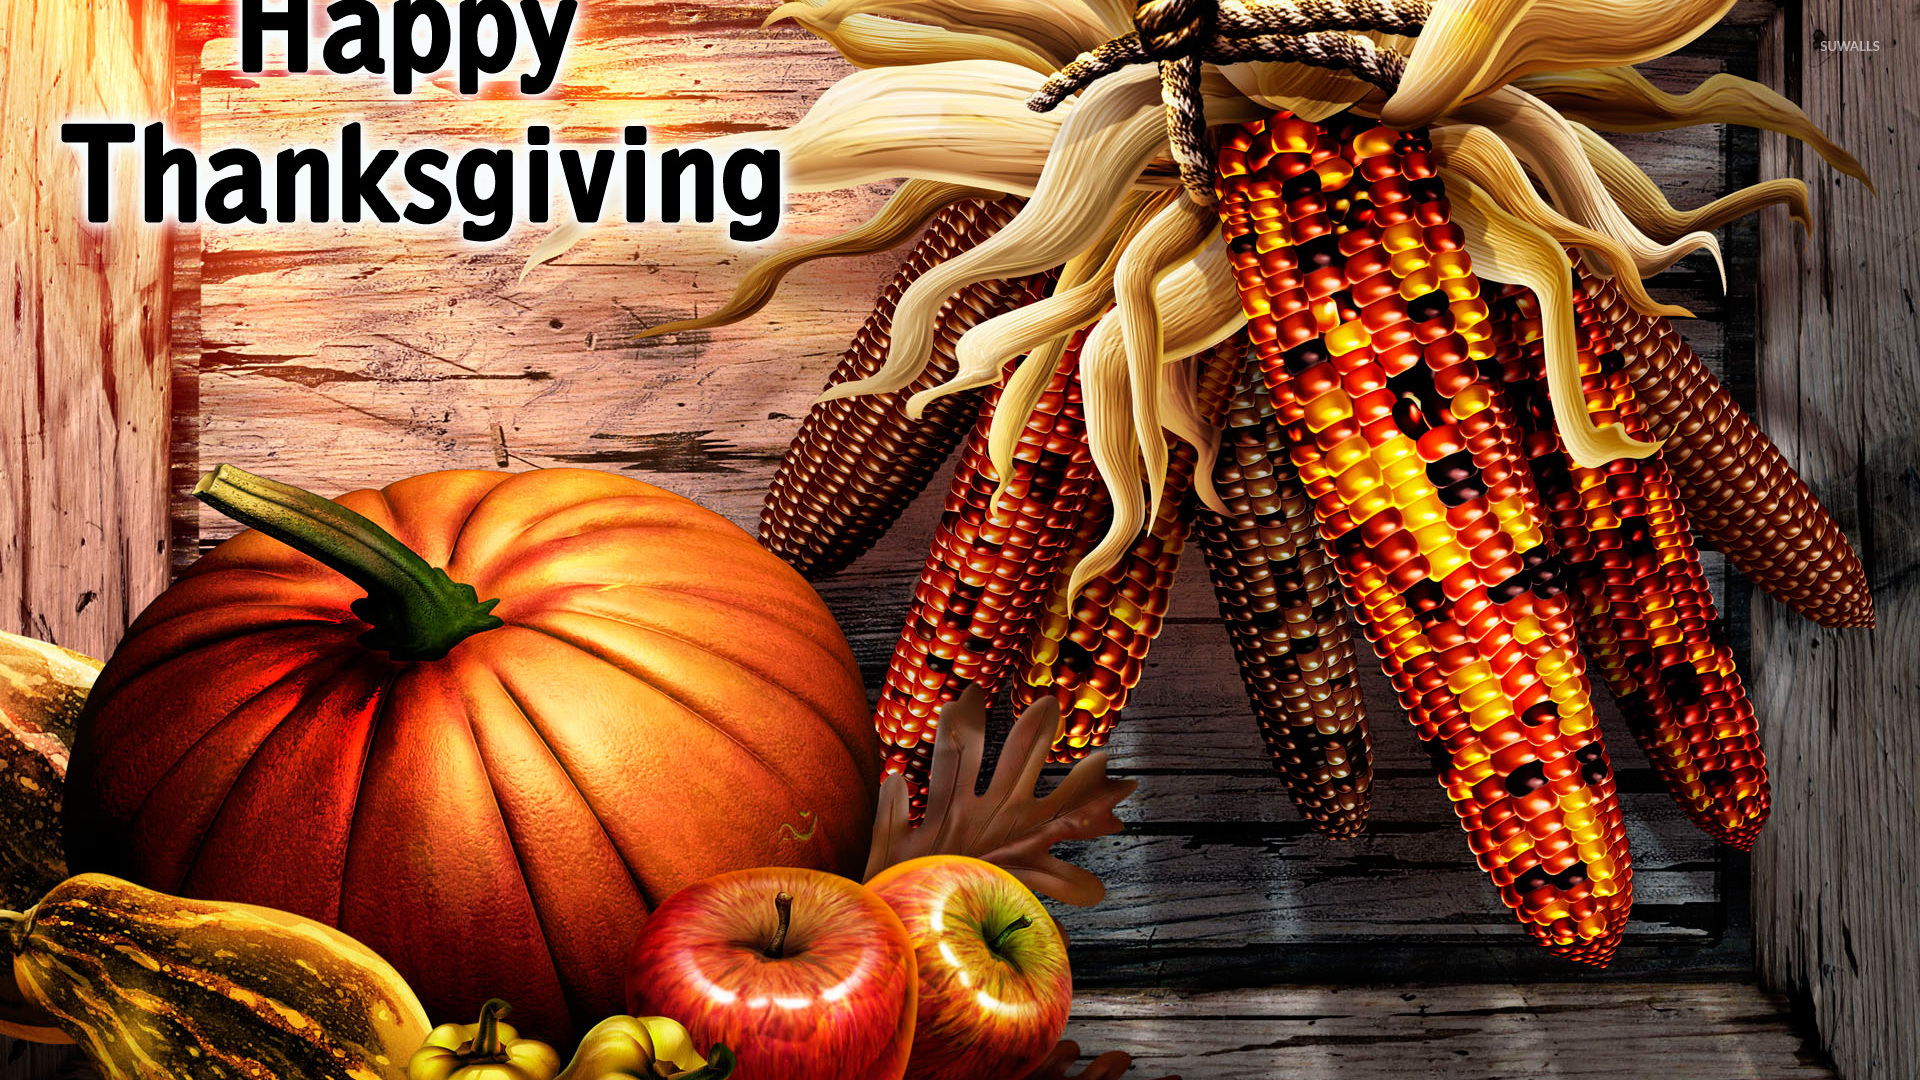 Fall Scenes Wallpaper With Pumpkins Thanksgiving 7 Wallpaper Holiday Wallpapers 8557